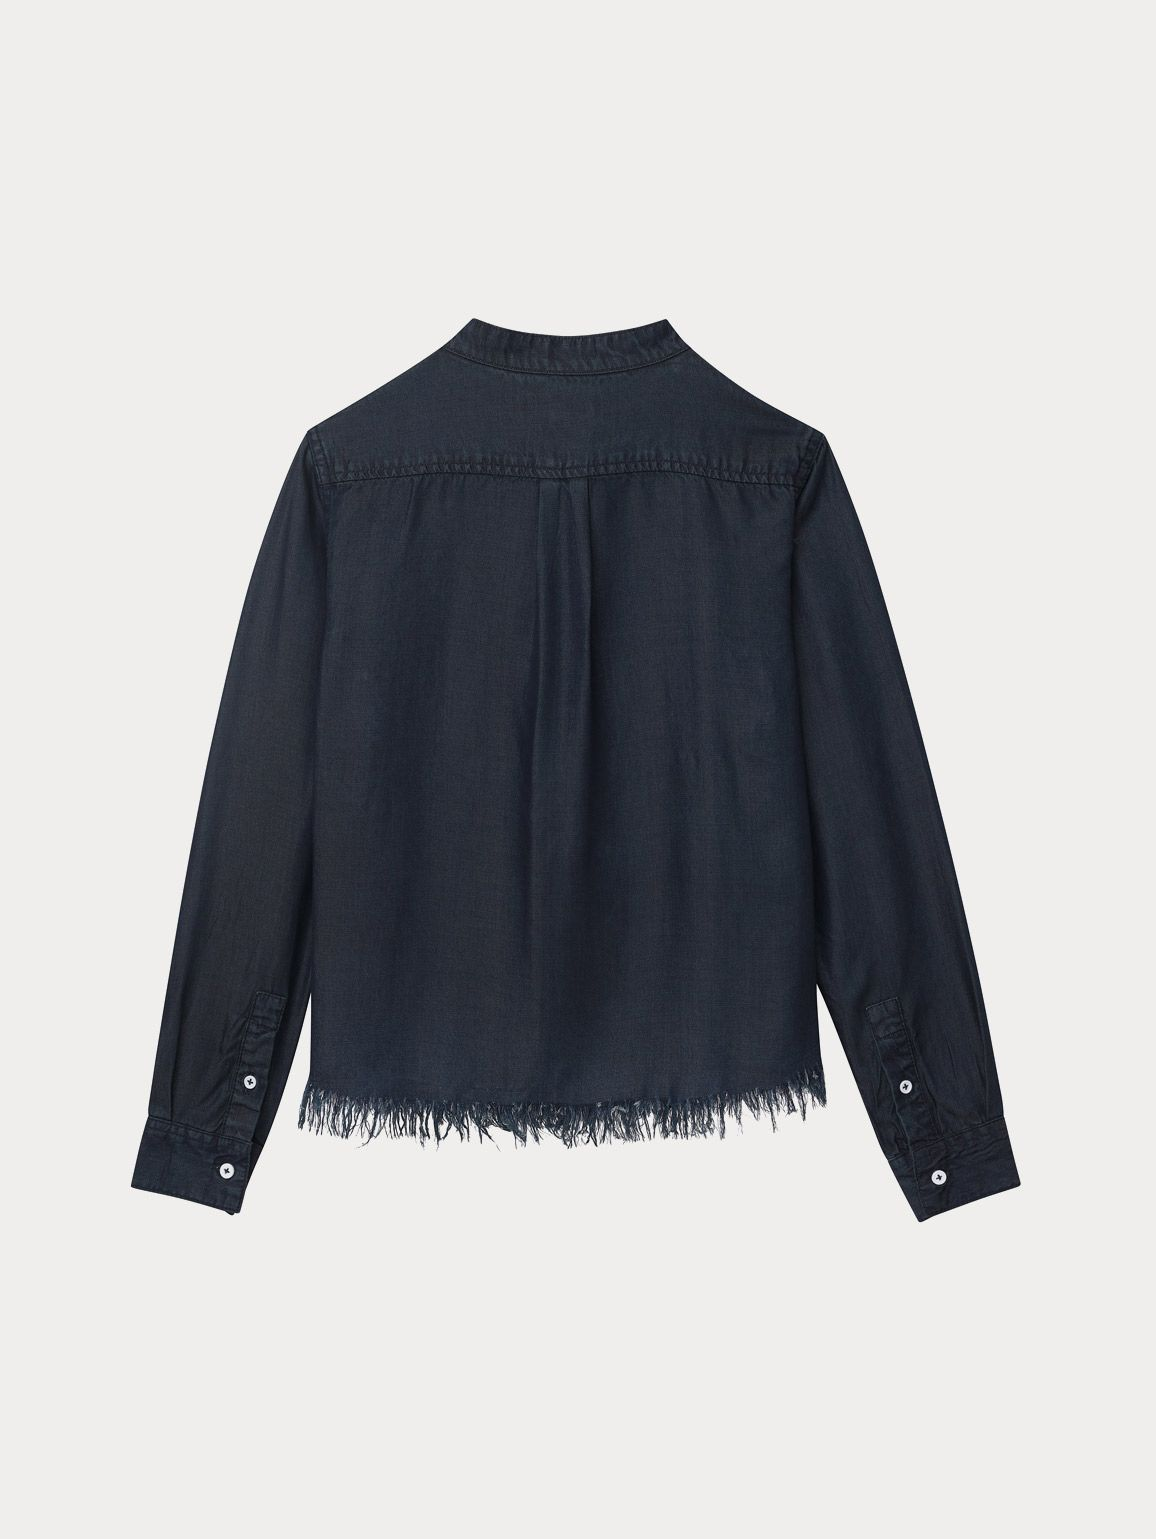 Girls - Marnie Long Sleeve Top | Washed Black Overdye - DL1961